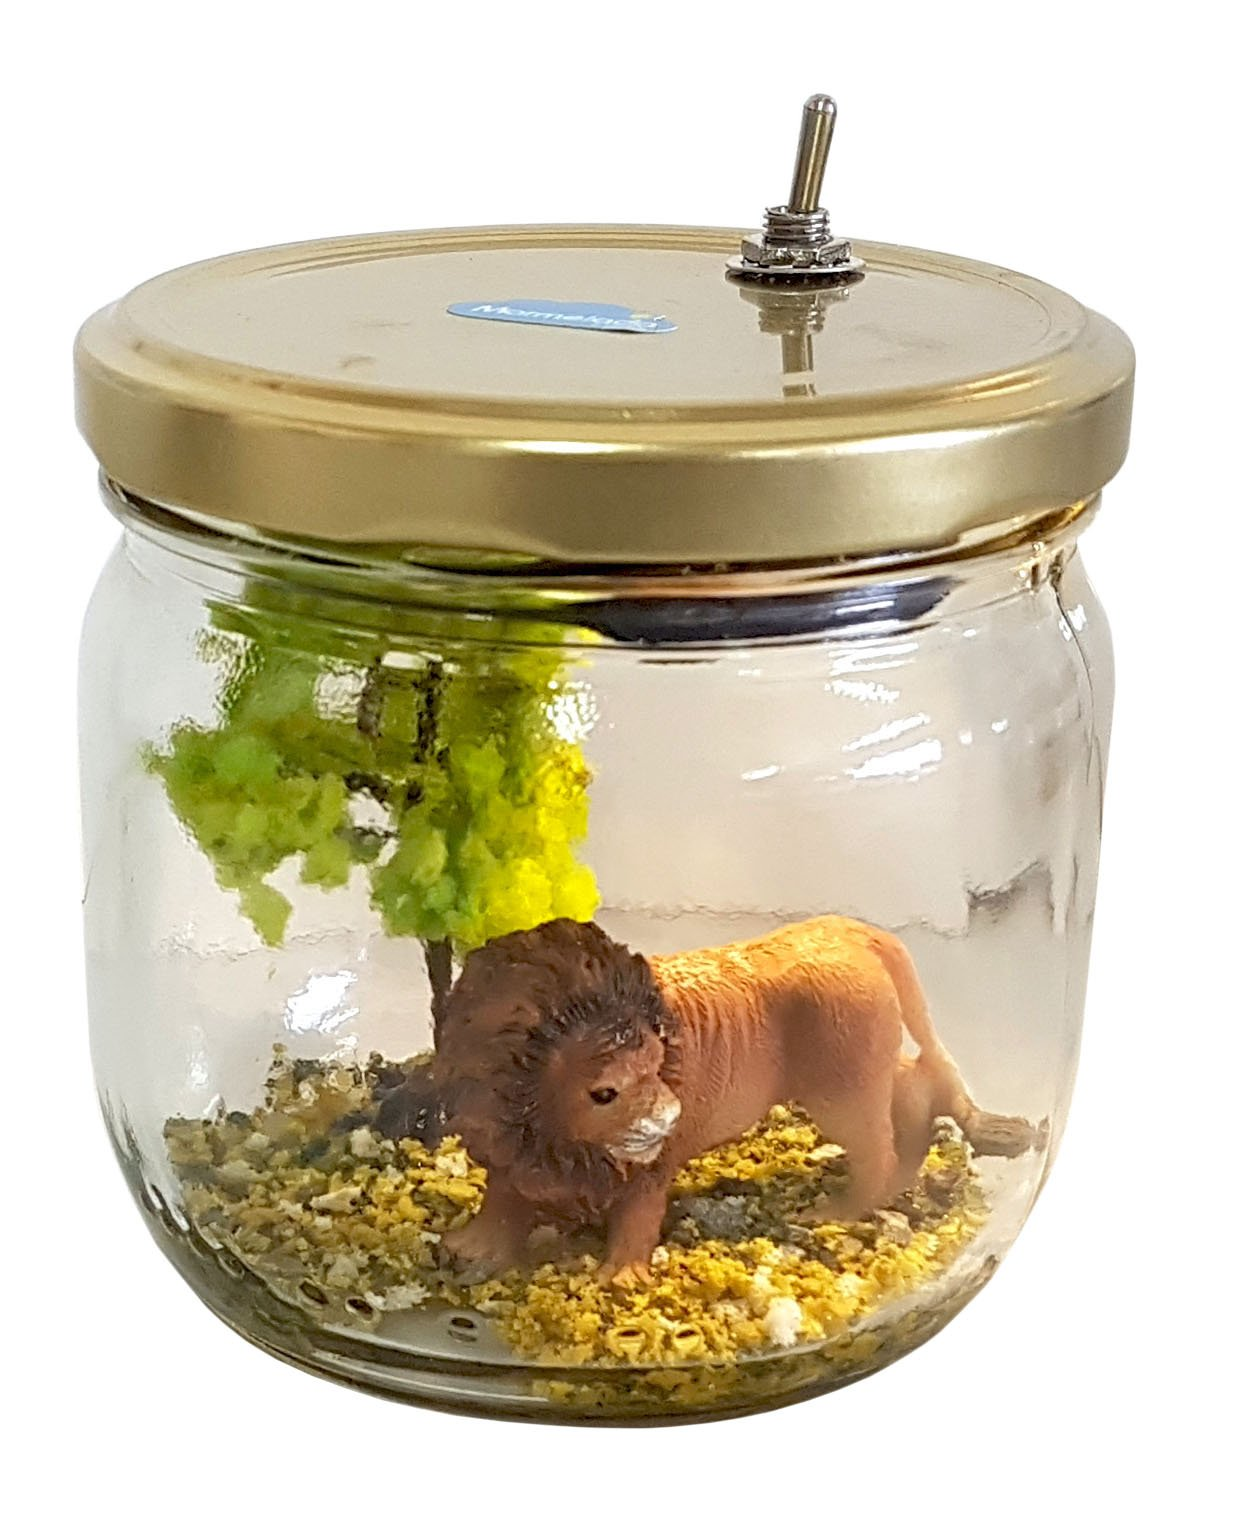 Night Light for Kids, Marmelada Lights, Story in a Jar, Junior Series African Lion, LED Bedside Kids, Baby, Children Night Lamp Bookshelf or Tabletop, Battery Operated 2 Months runtime.